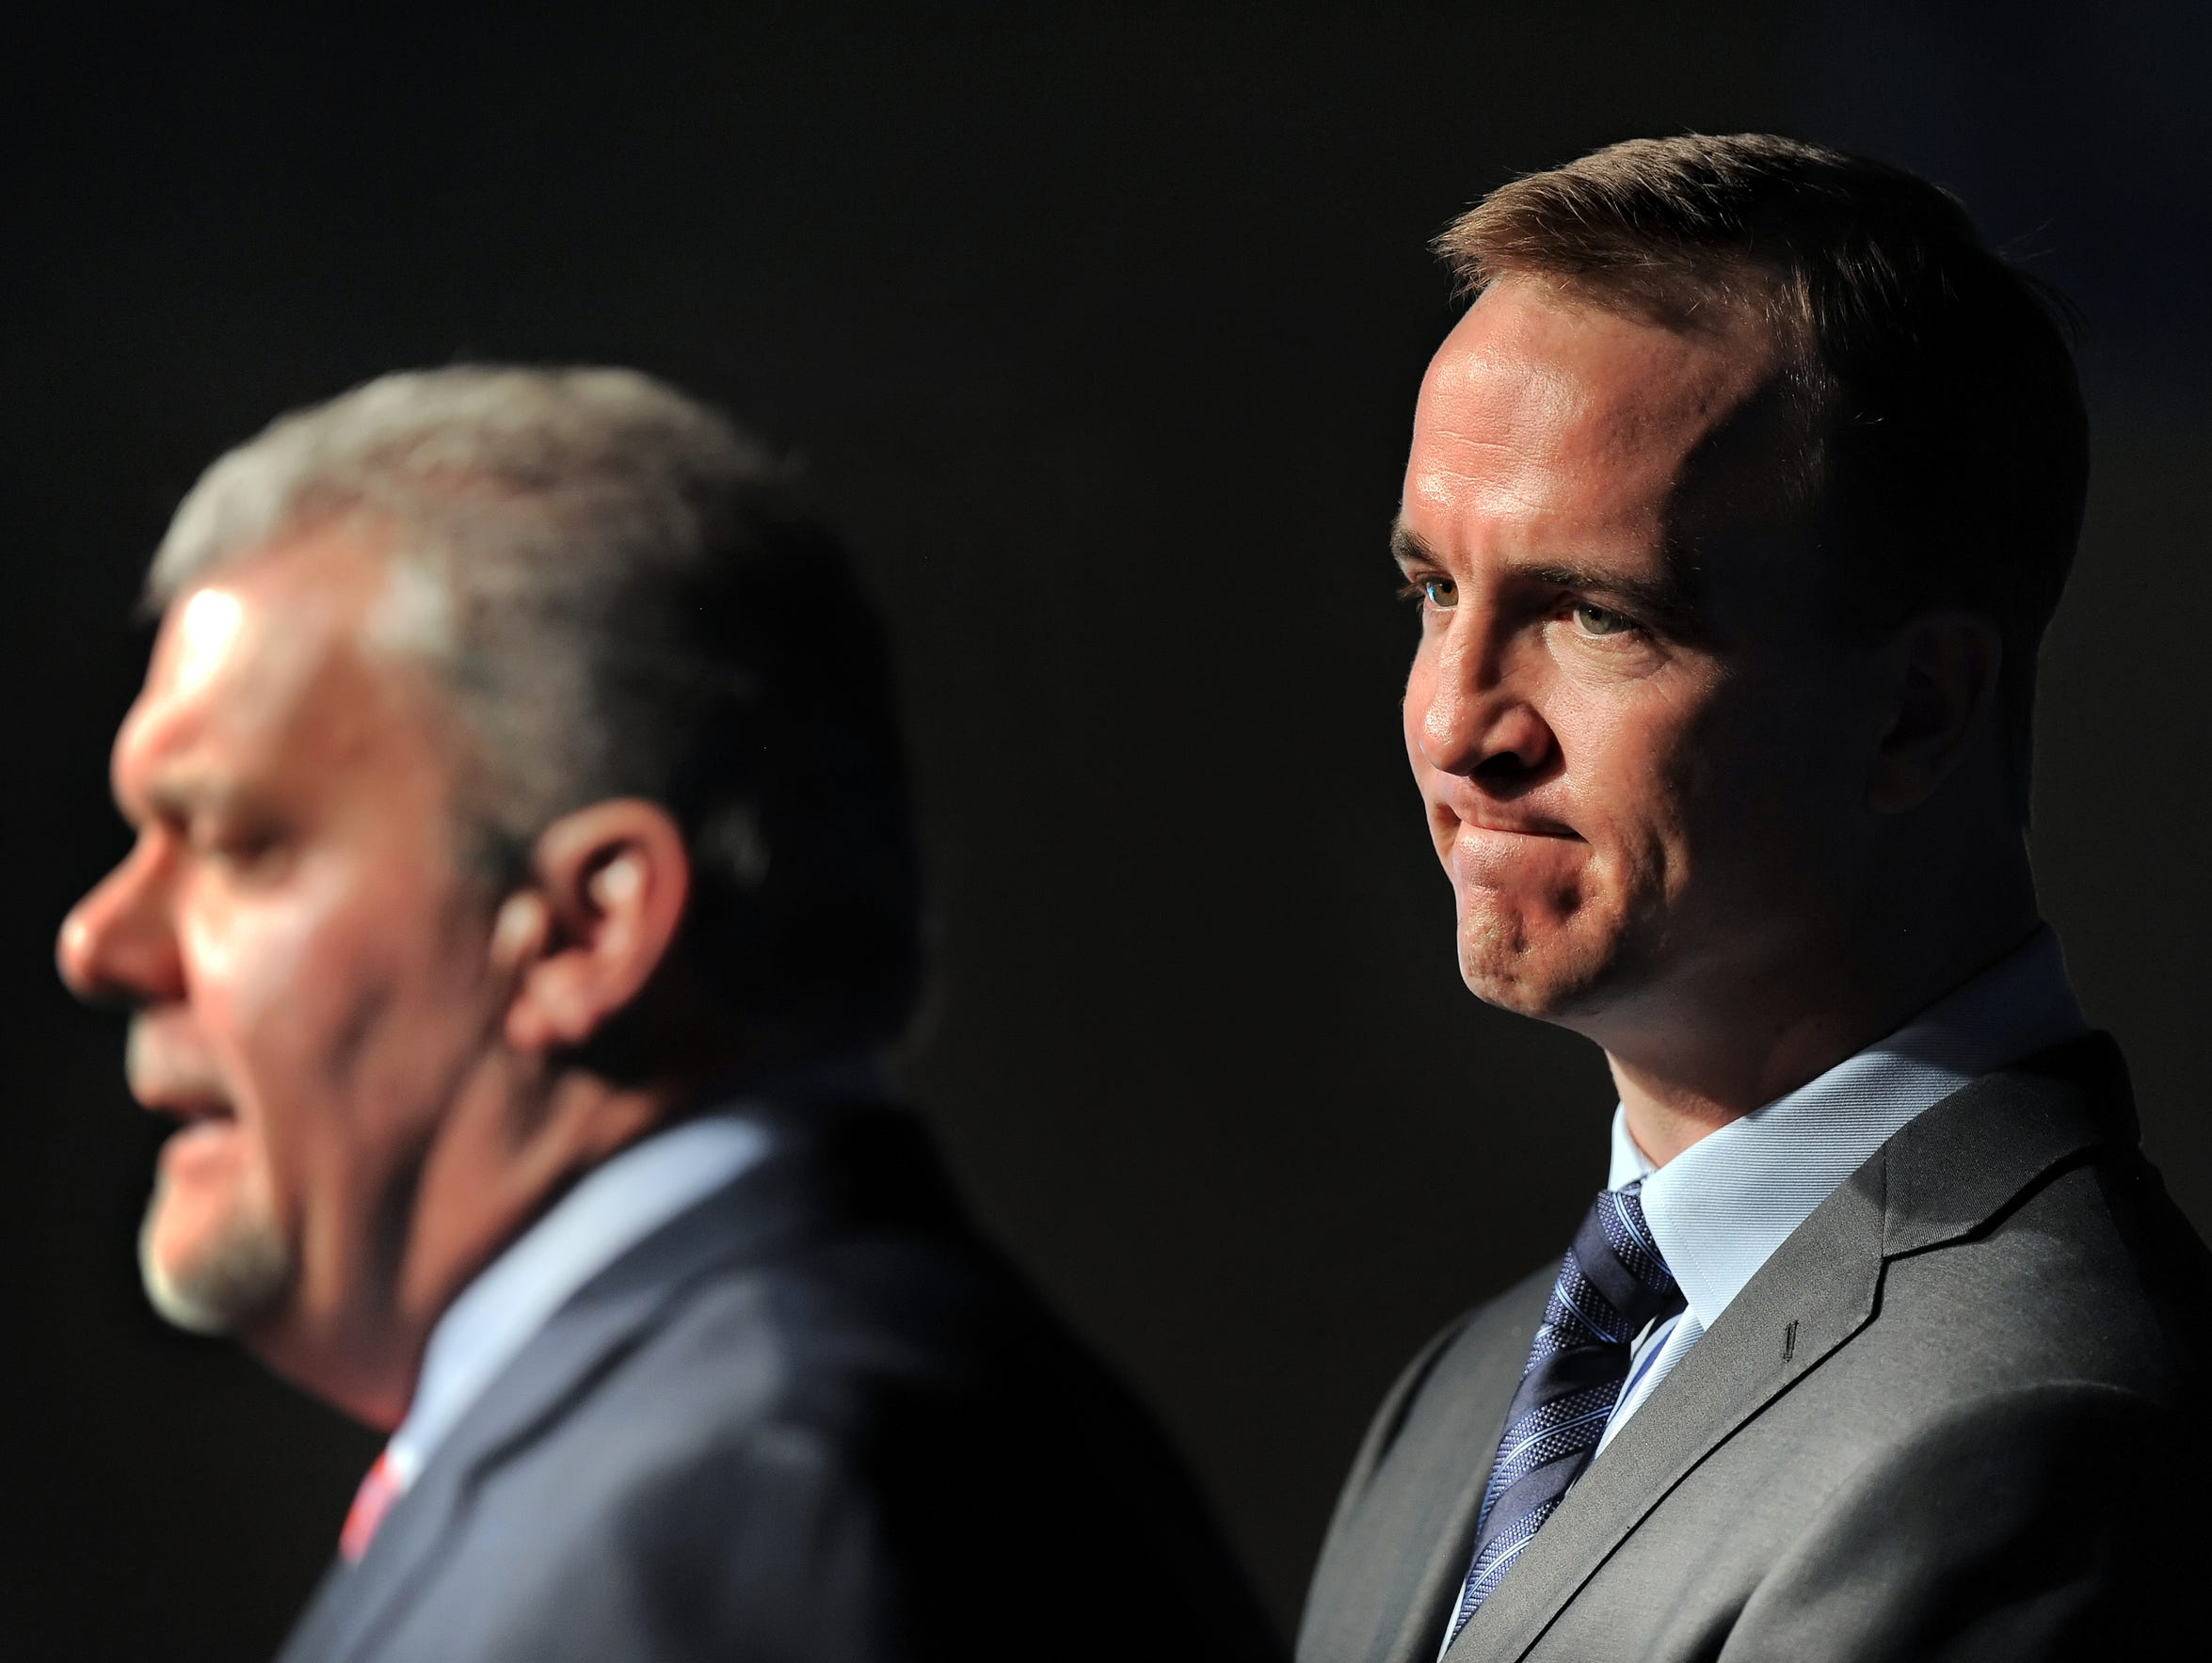 Manning fought back emotions on March 7, 2012, the